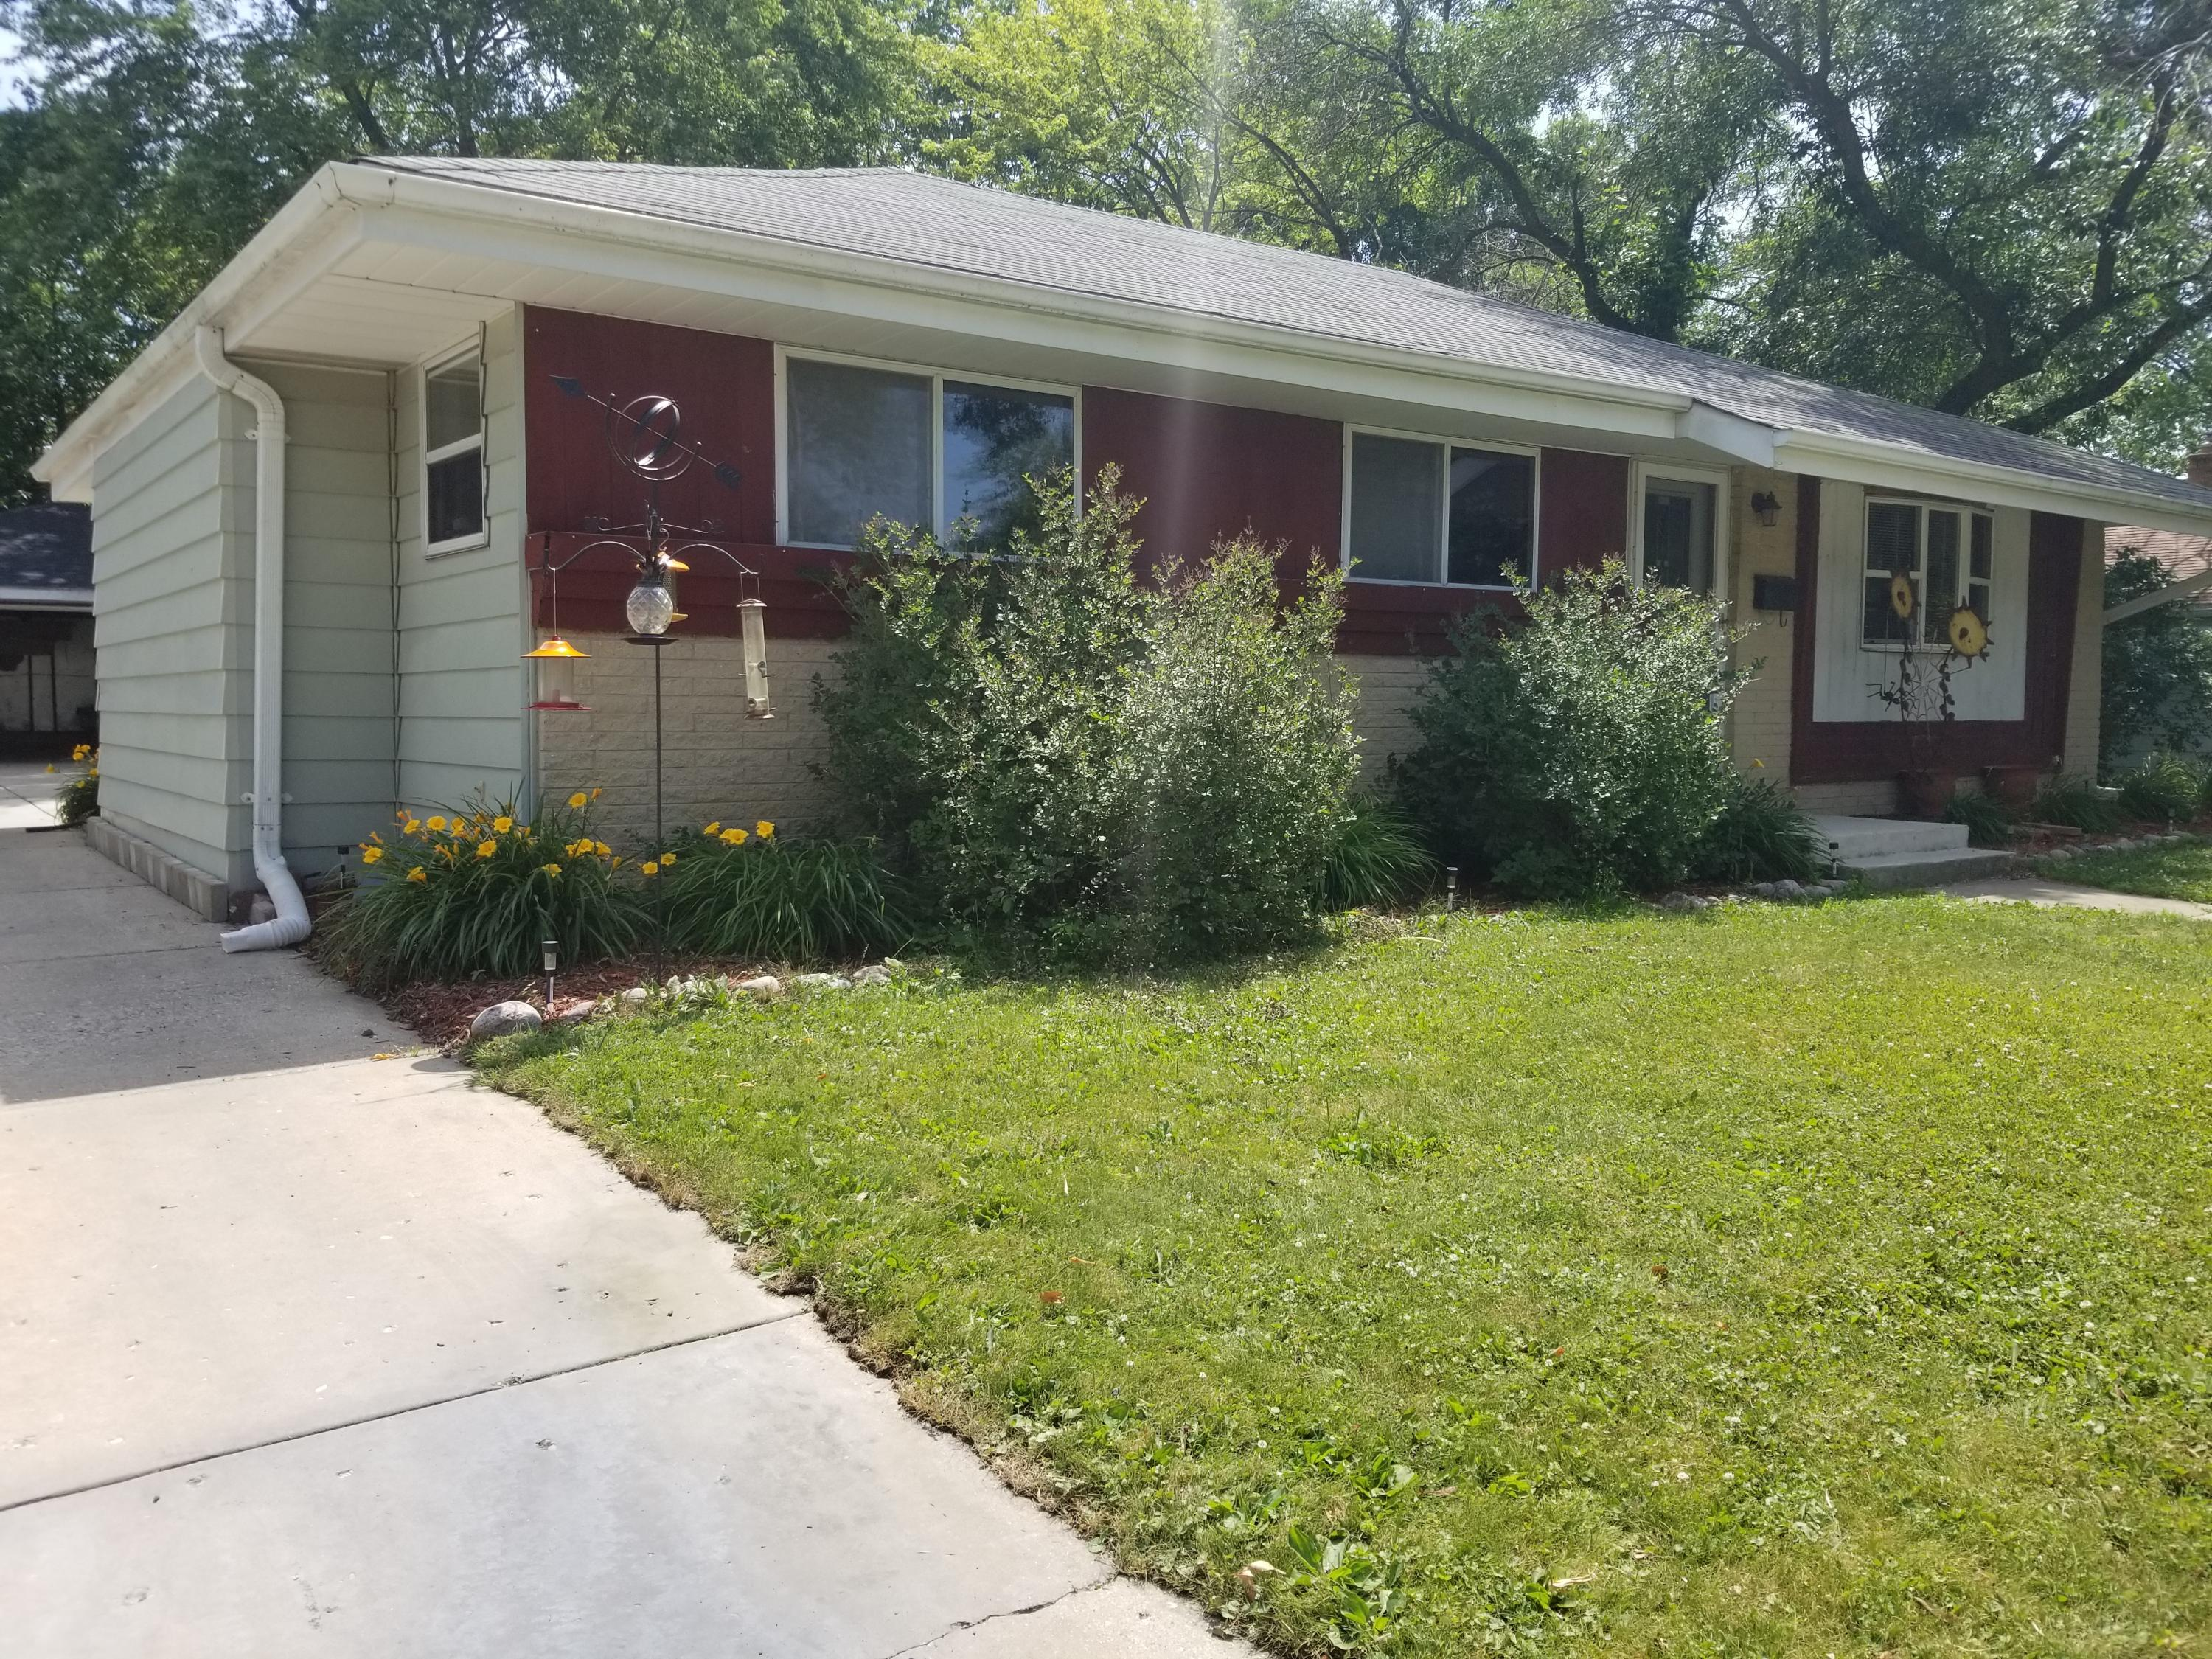 1803 Grand Ave, Waukesha, Wisconsin 53189, 3 Bedrooms Bedrooms, 5 Rooms Rooms,1 BathroomBathrooms,Single-Family,For Sale,Grand Ave,1648352